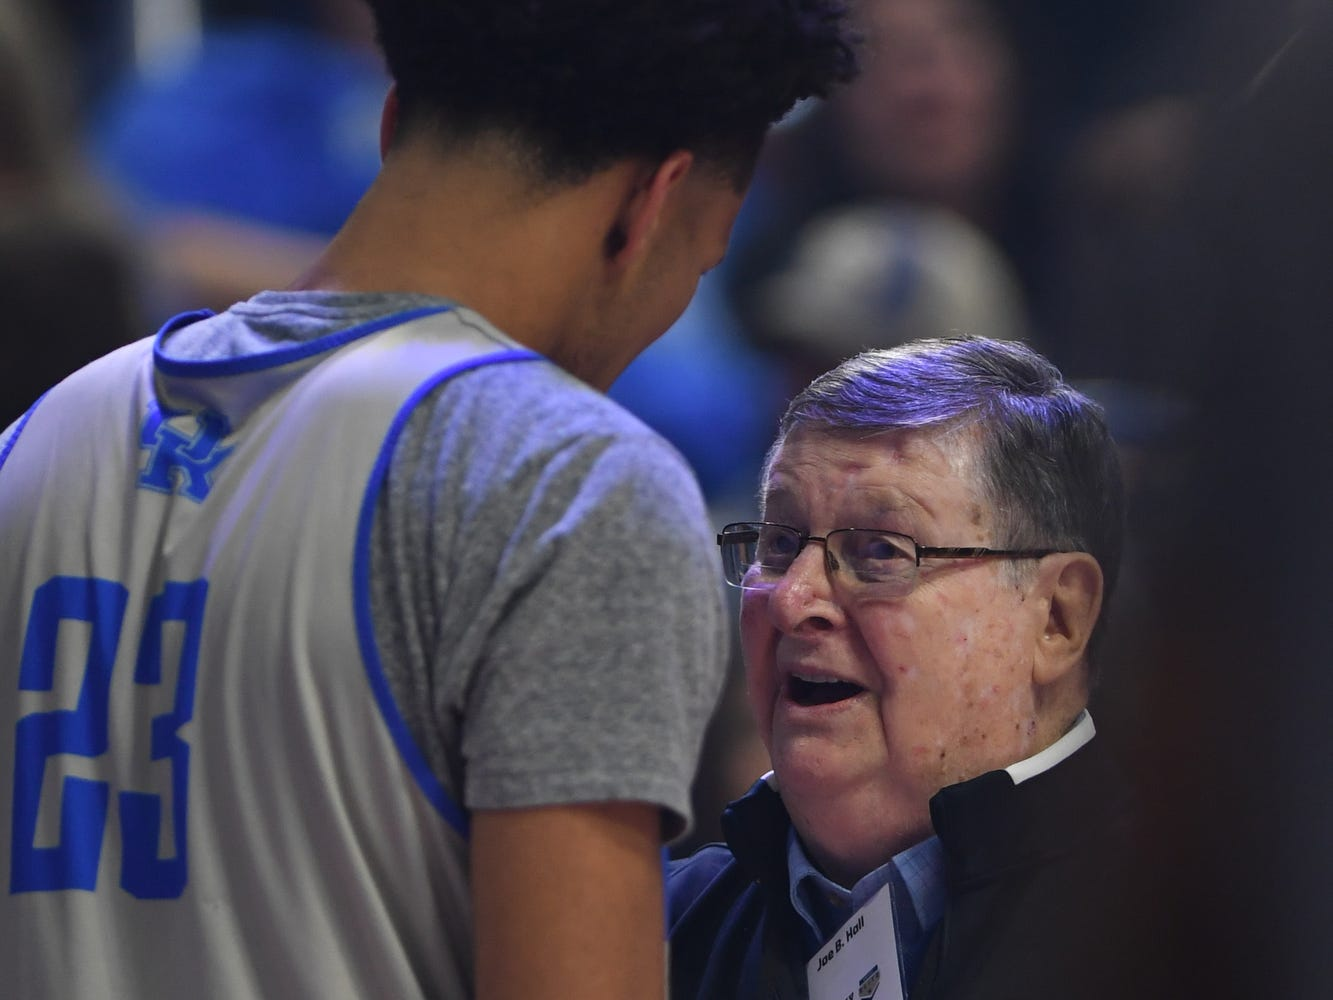 Former player and head coach Joe B. Hall talks to freshman EJ Montgomery during the University of Kentucky basketball's annual Big Blue Madness at Rupp Arena in Lexington, Kentucky on Friday, Oct. 12, 2018.